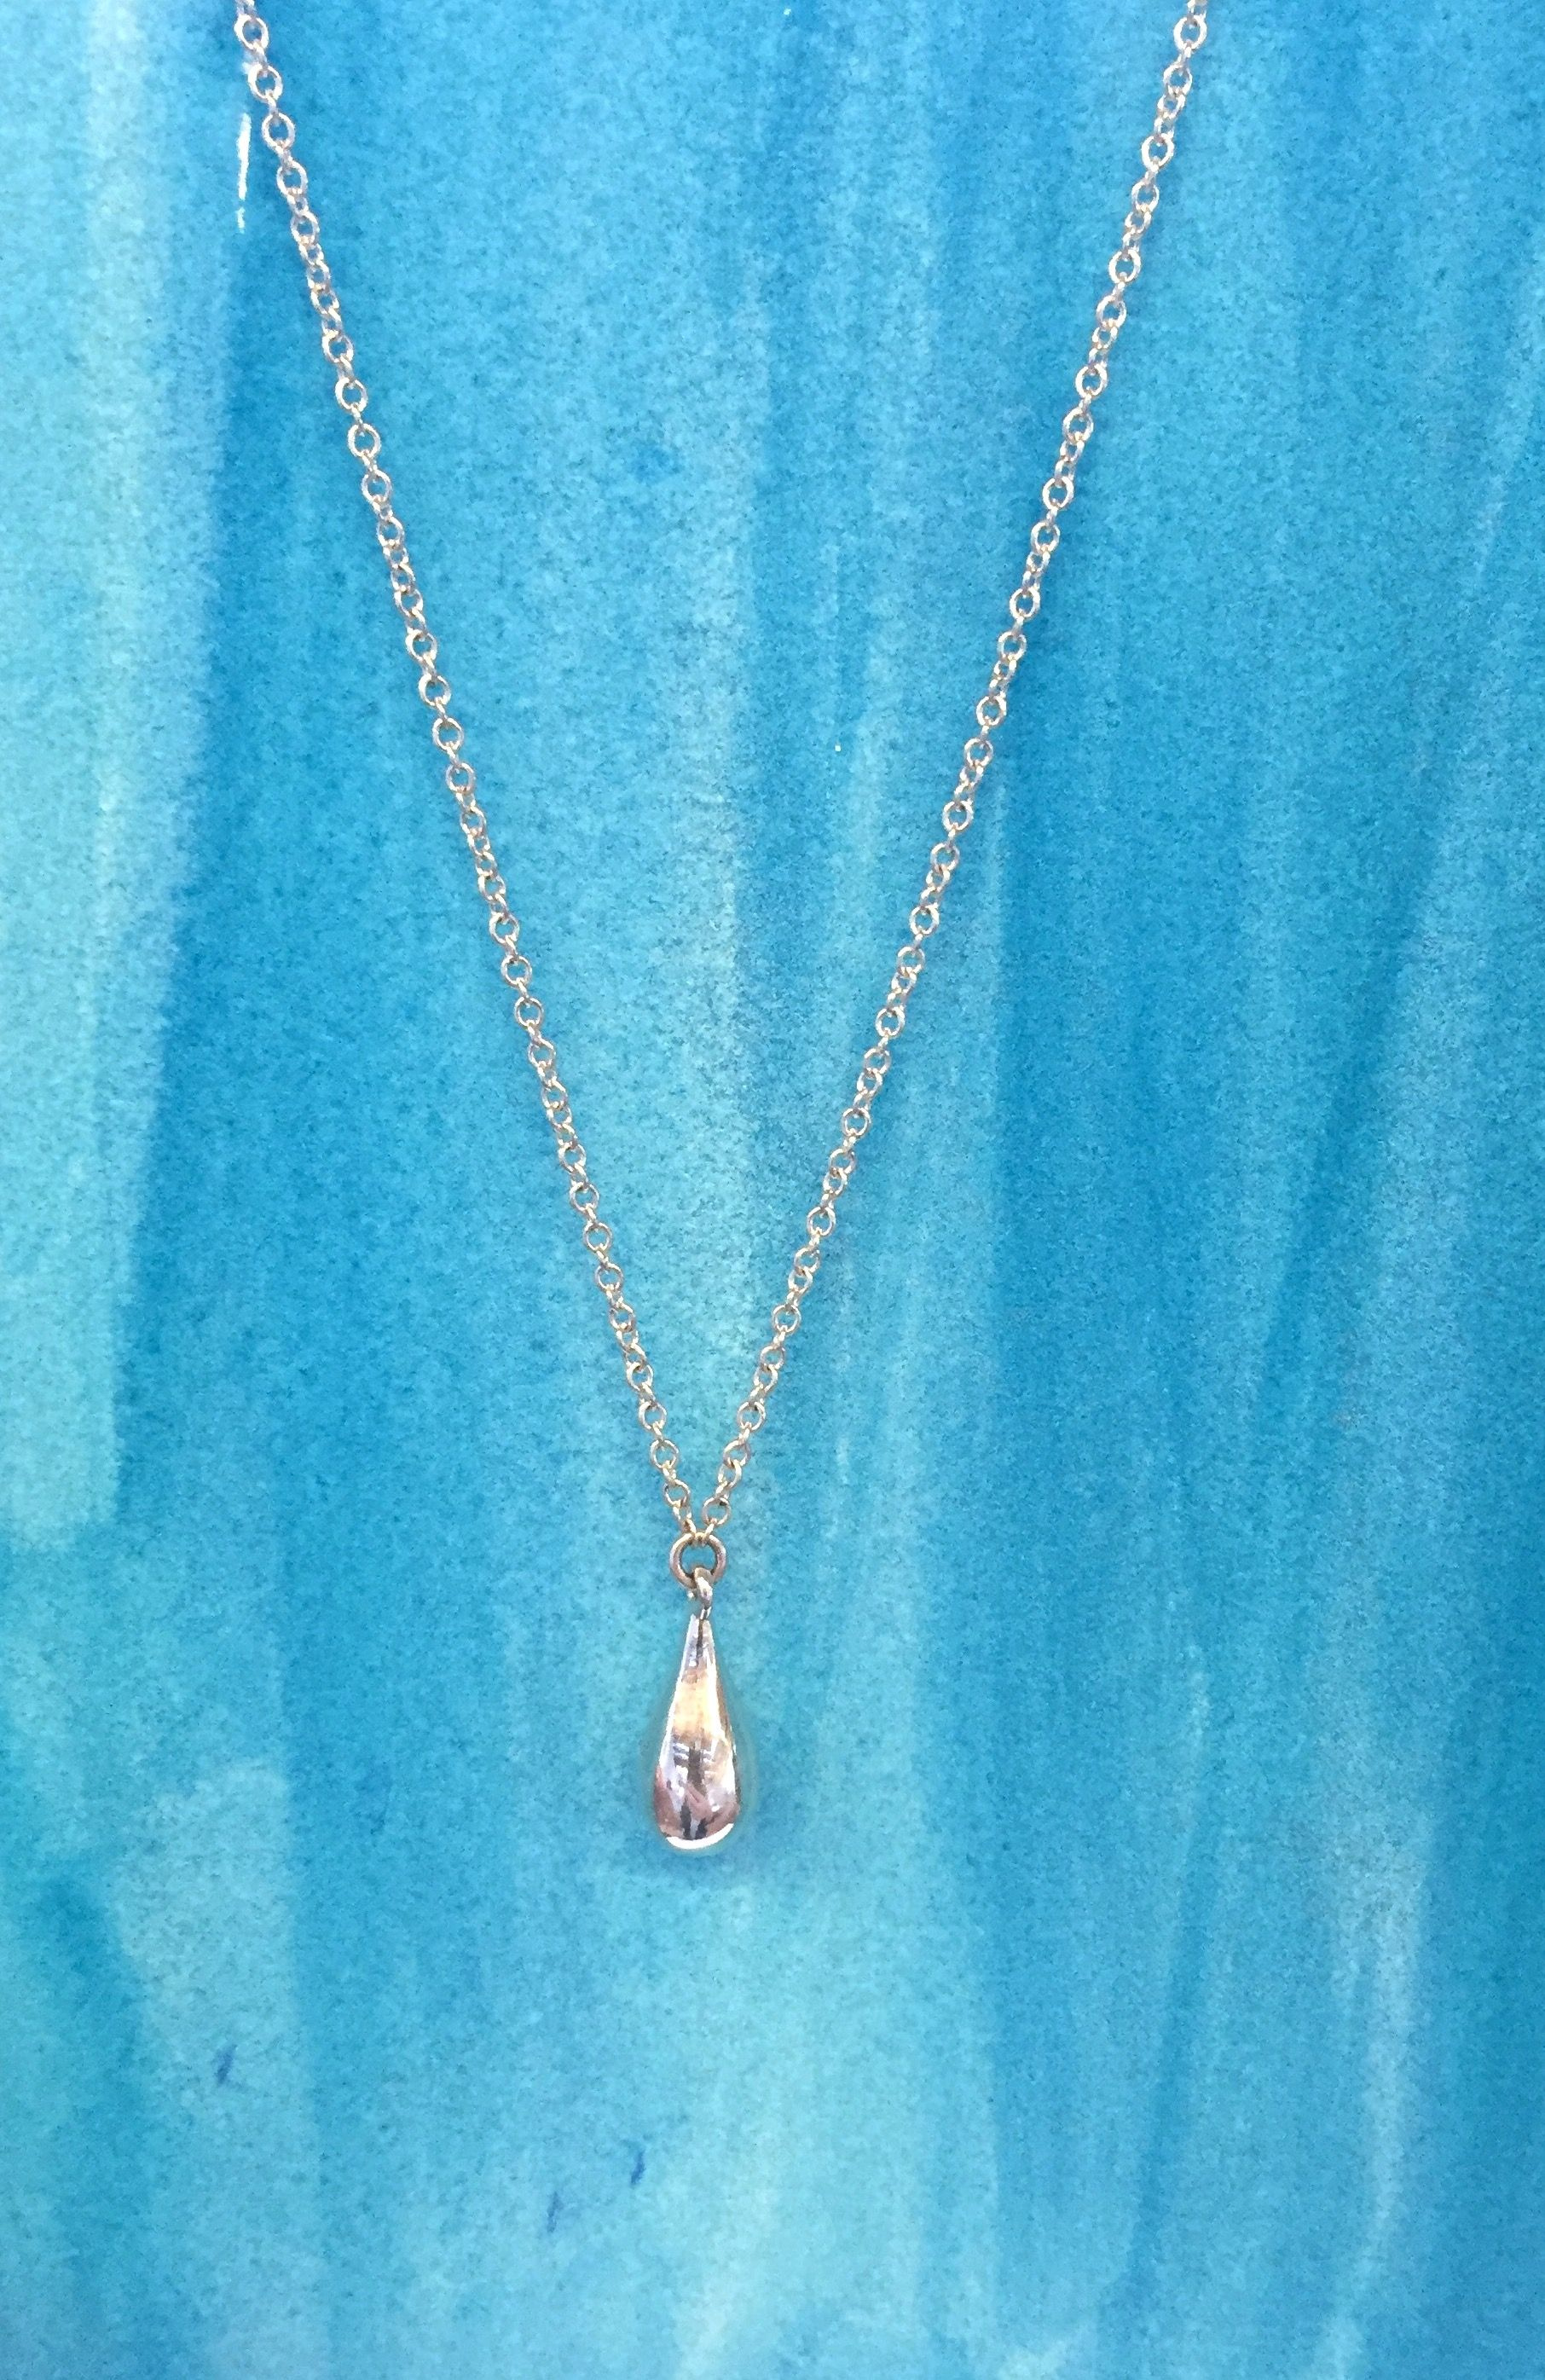 CAROLEE has designed this stunning water drop inspired necklace that will help support Water.org. CAROLEE will donate $10 to Water.org from the sale of each Sterling Silver Water Drop Necklace.